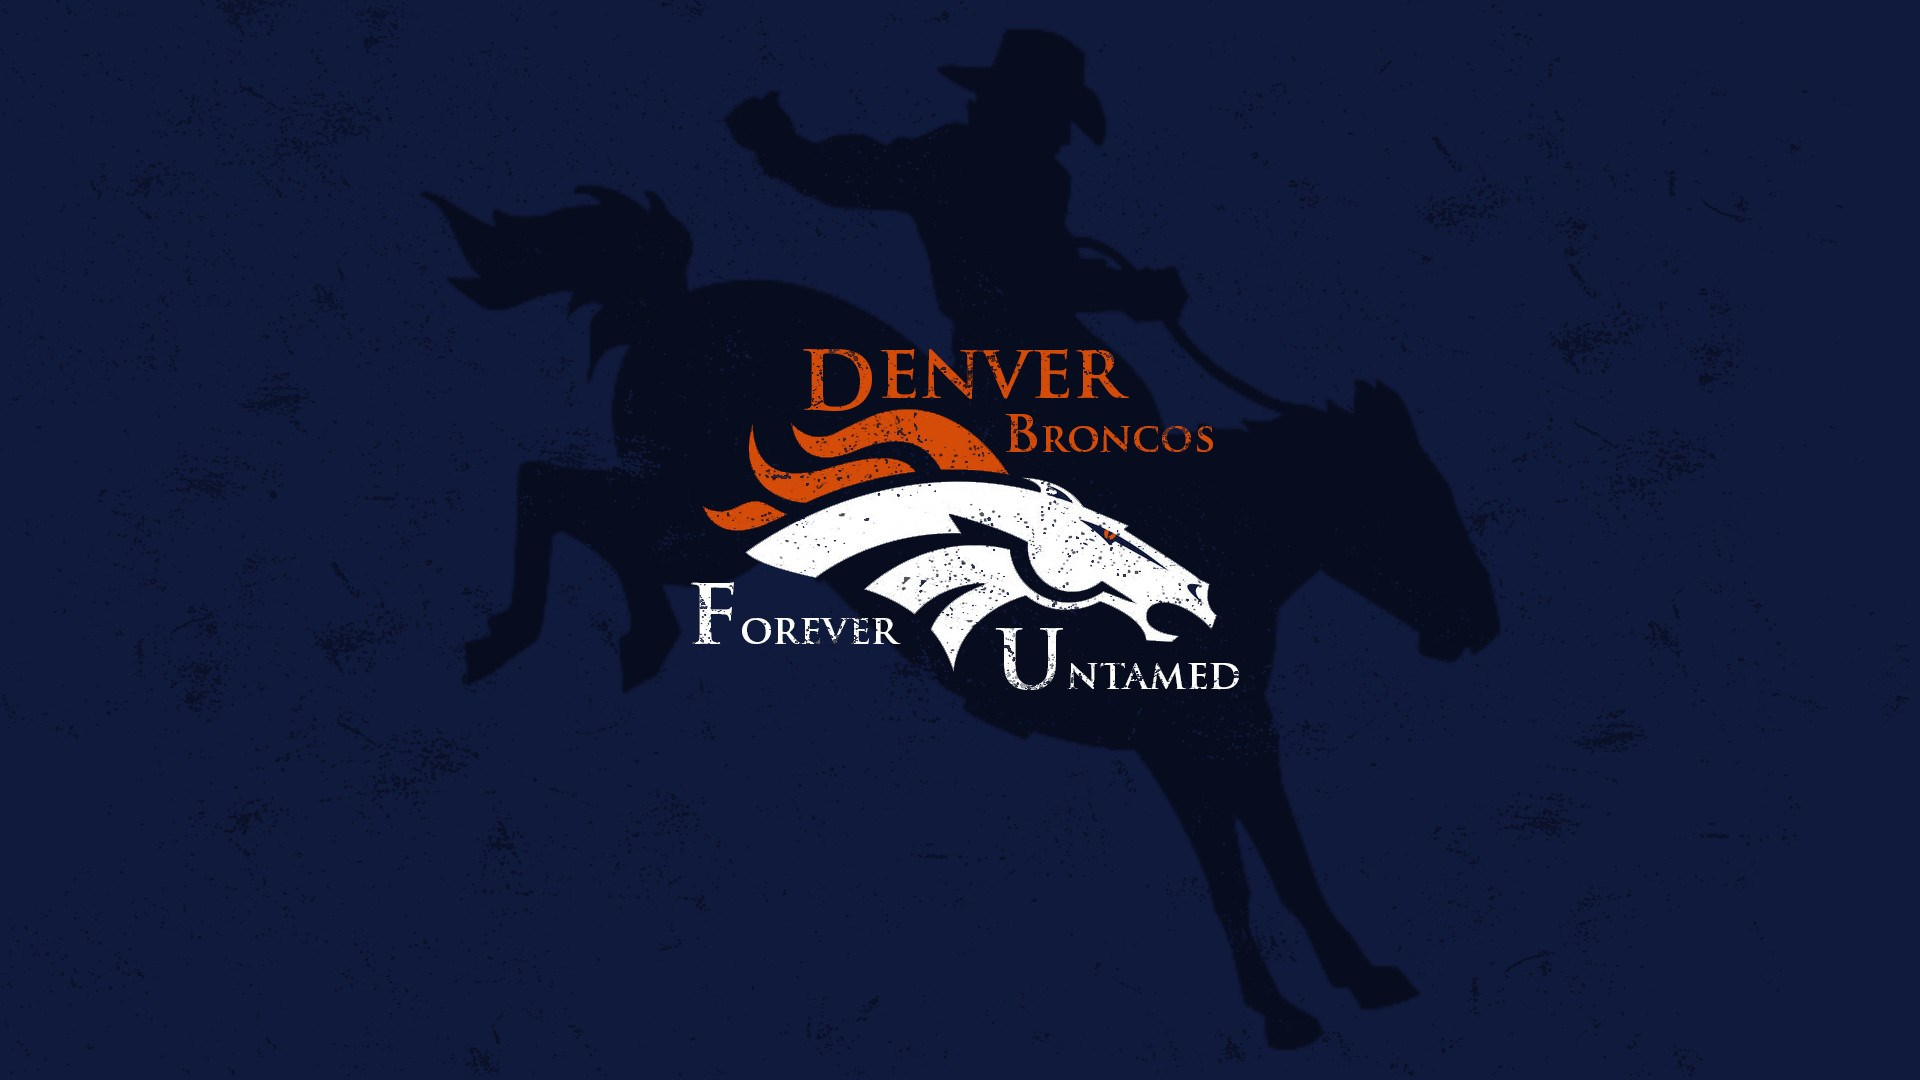 Halle-Cook-Backgrounds-High-Resolution-denver-broncos-pic-1920-x-1080-px-wallpaper-wpc5805650